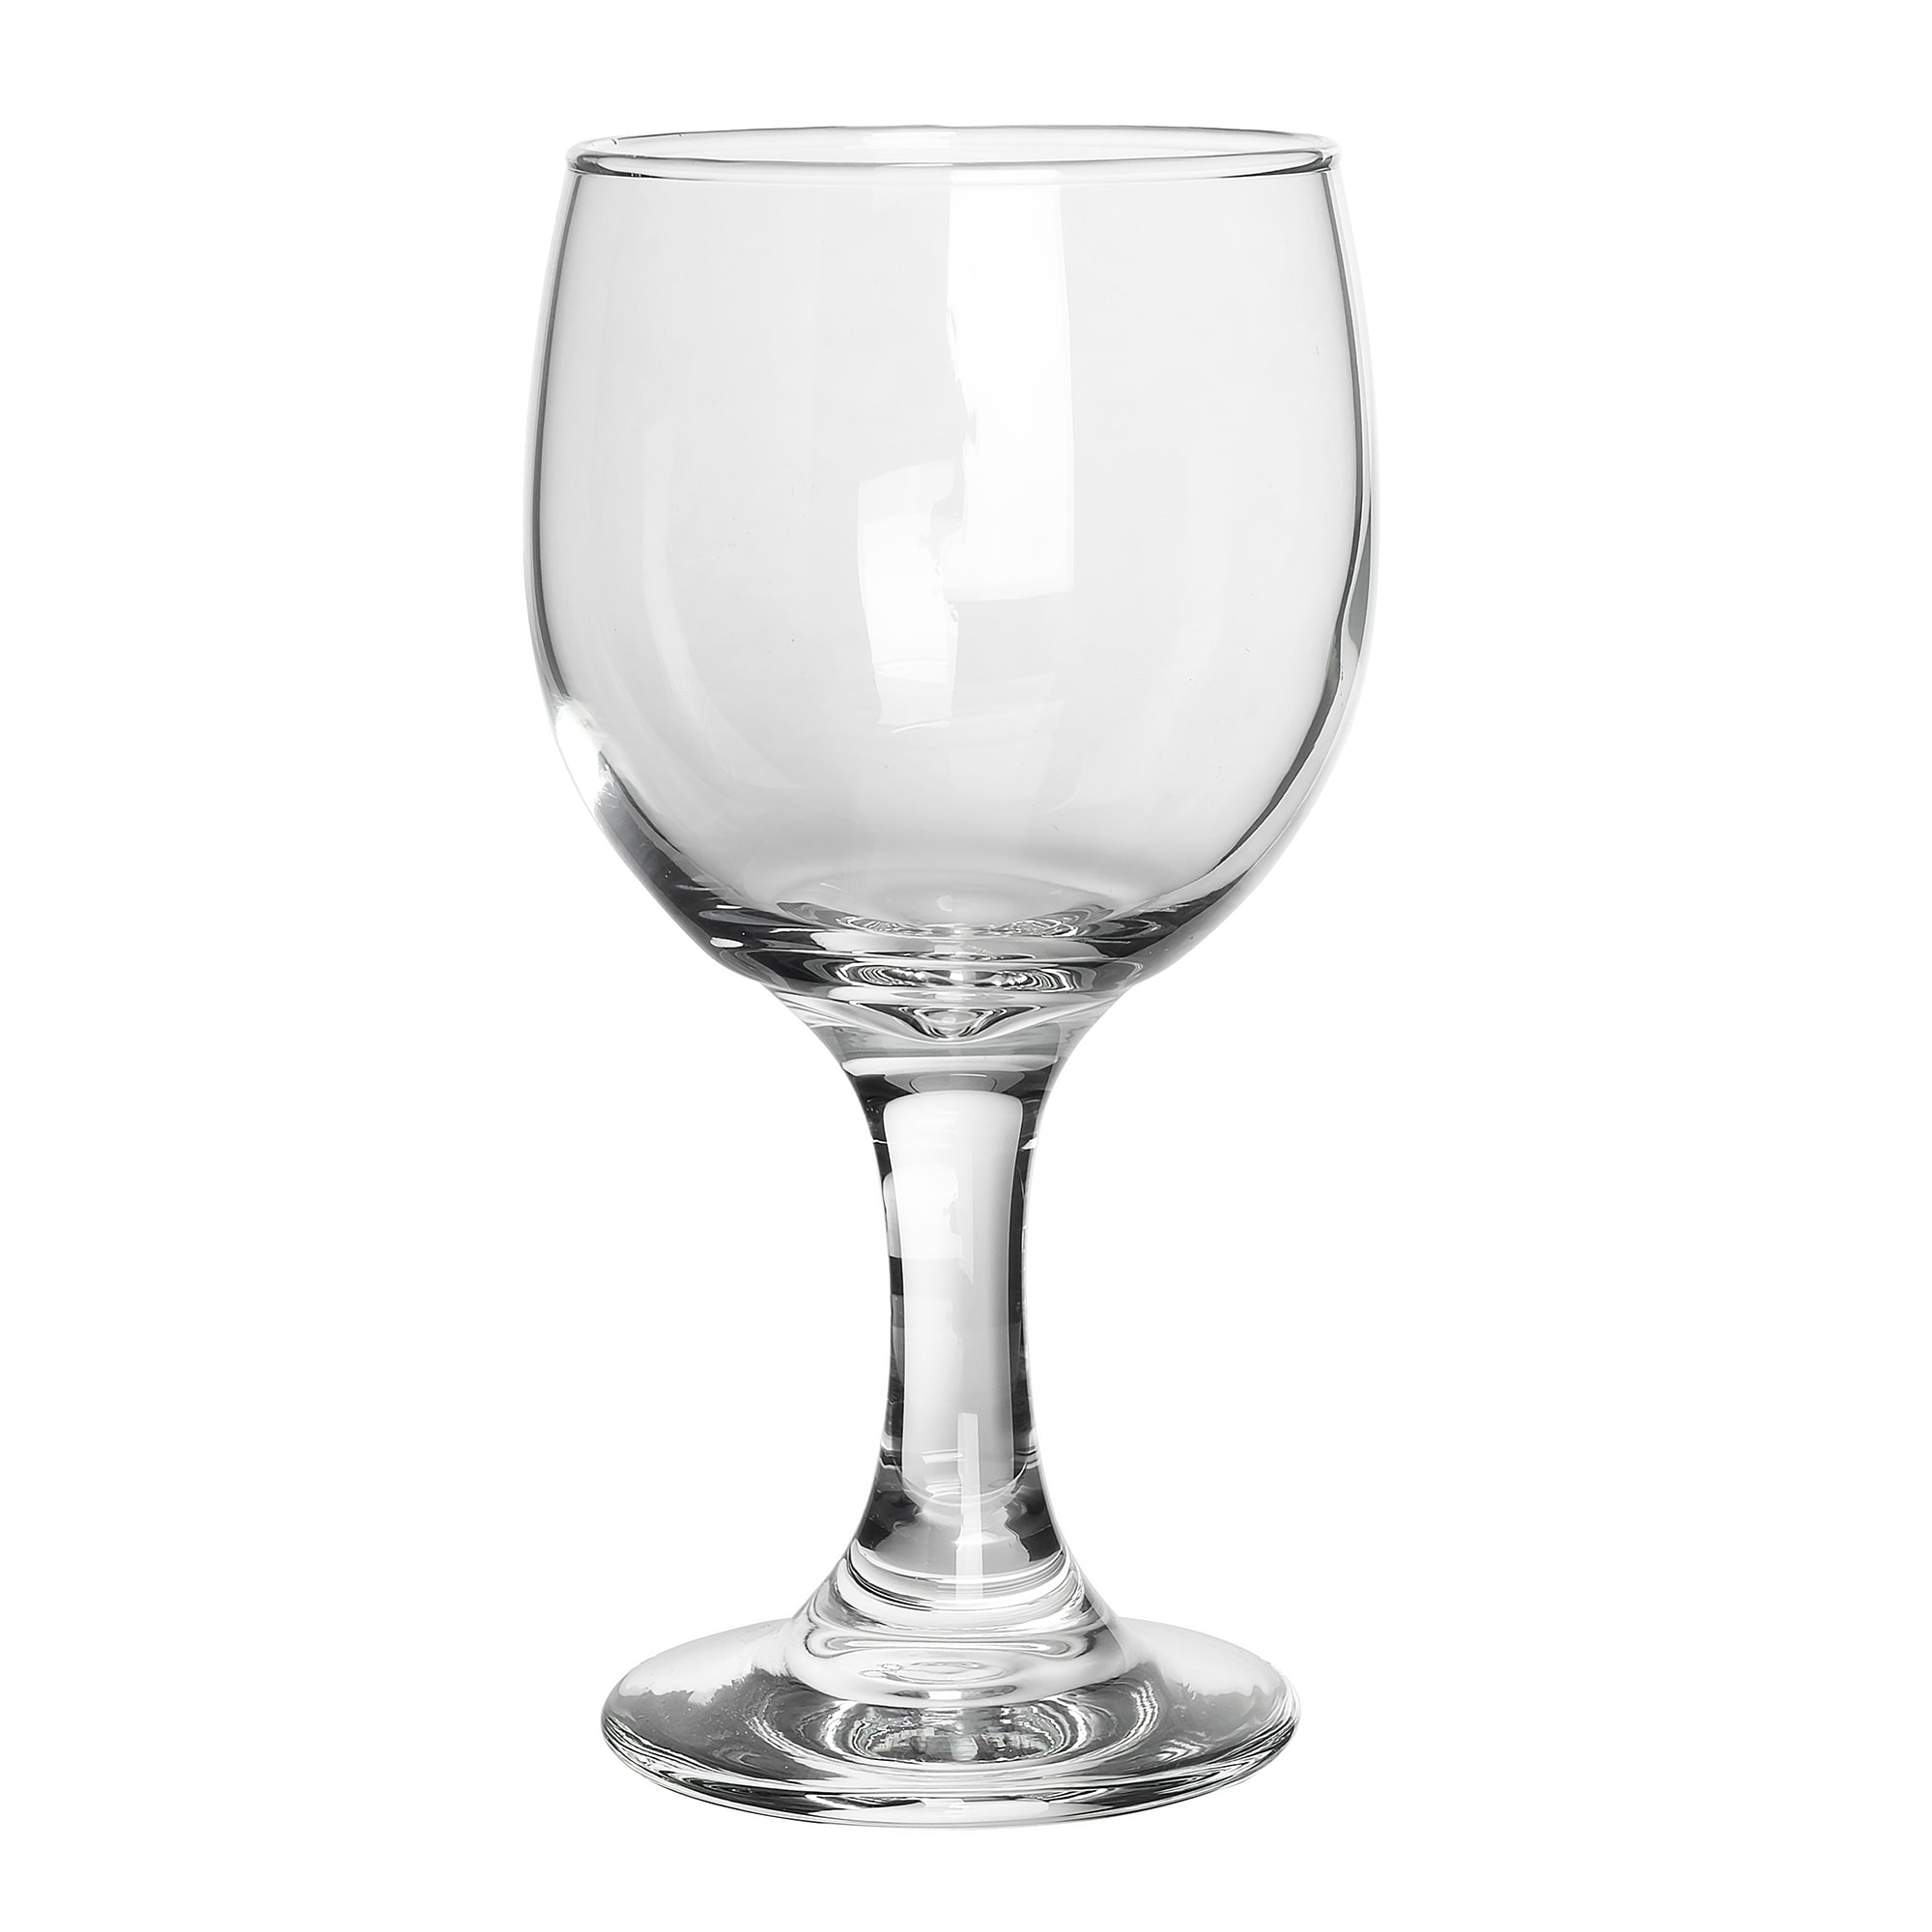 Libbey 3769 6.5-oz Embassy Wine Glass - Safedge Rim & Foot